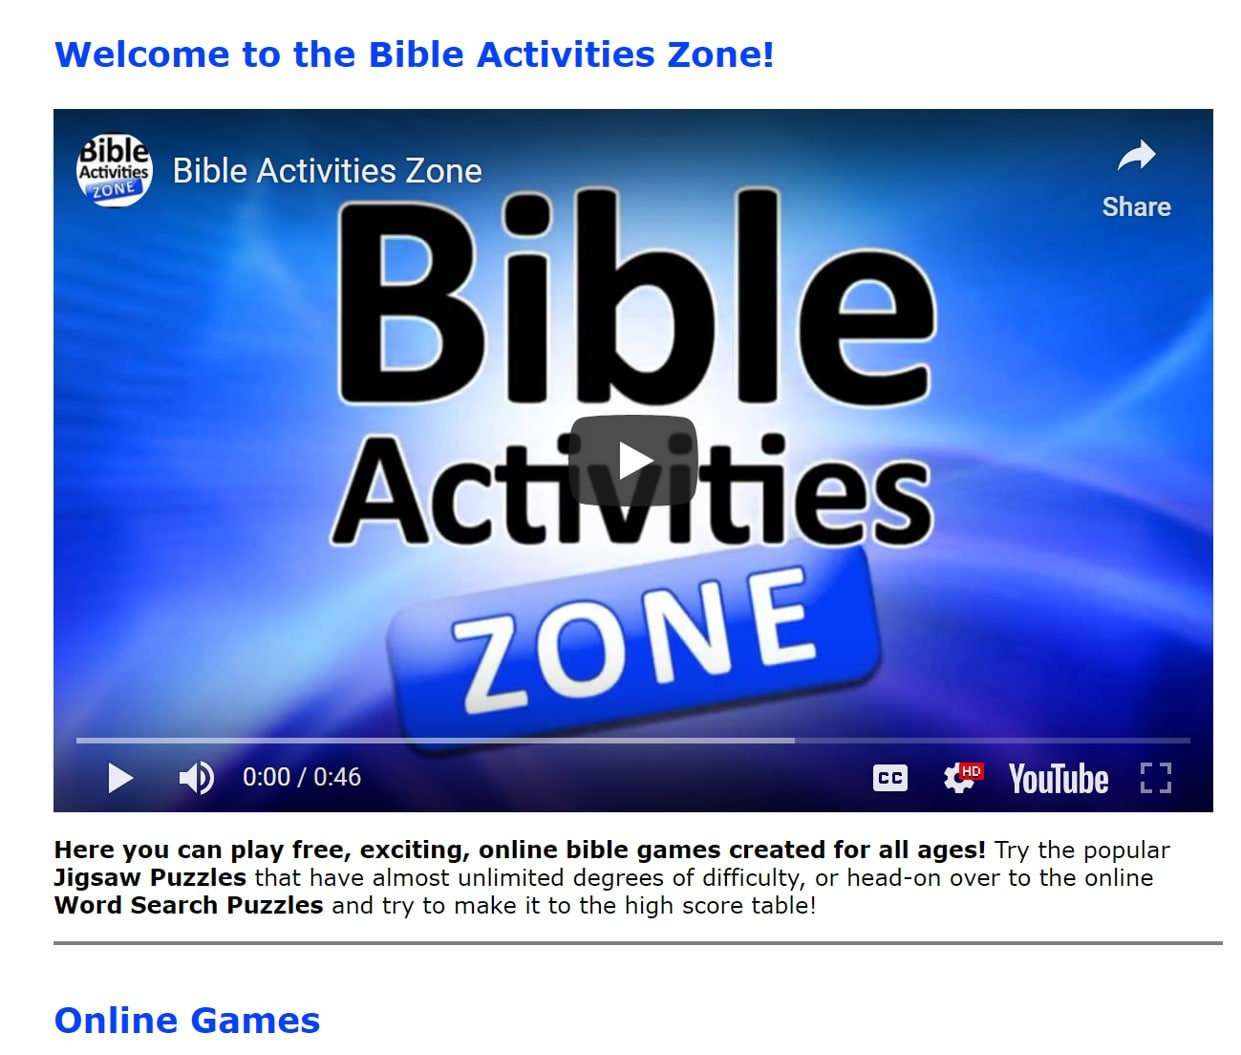 Christian Gaming For All The Family